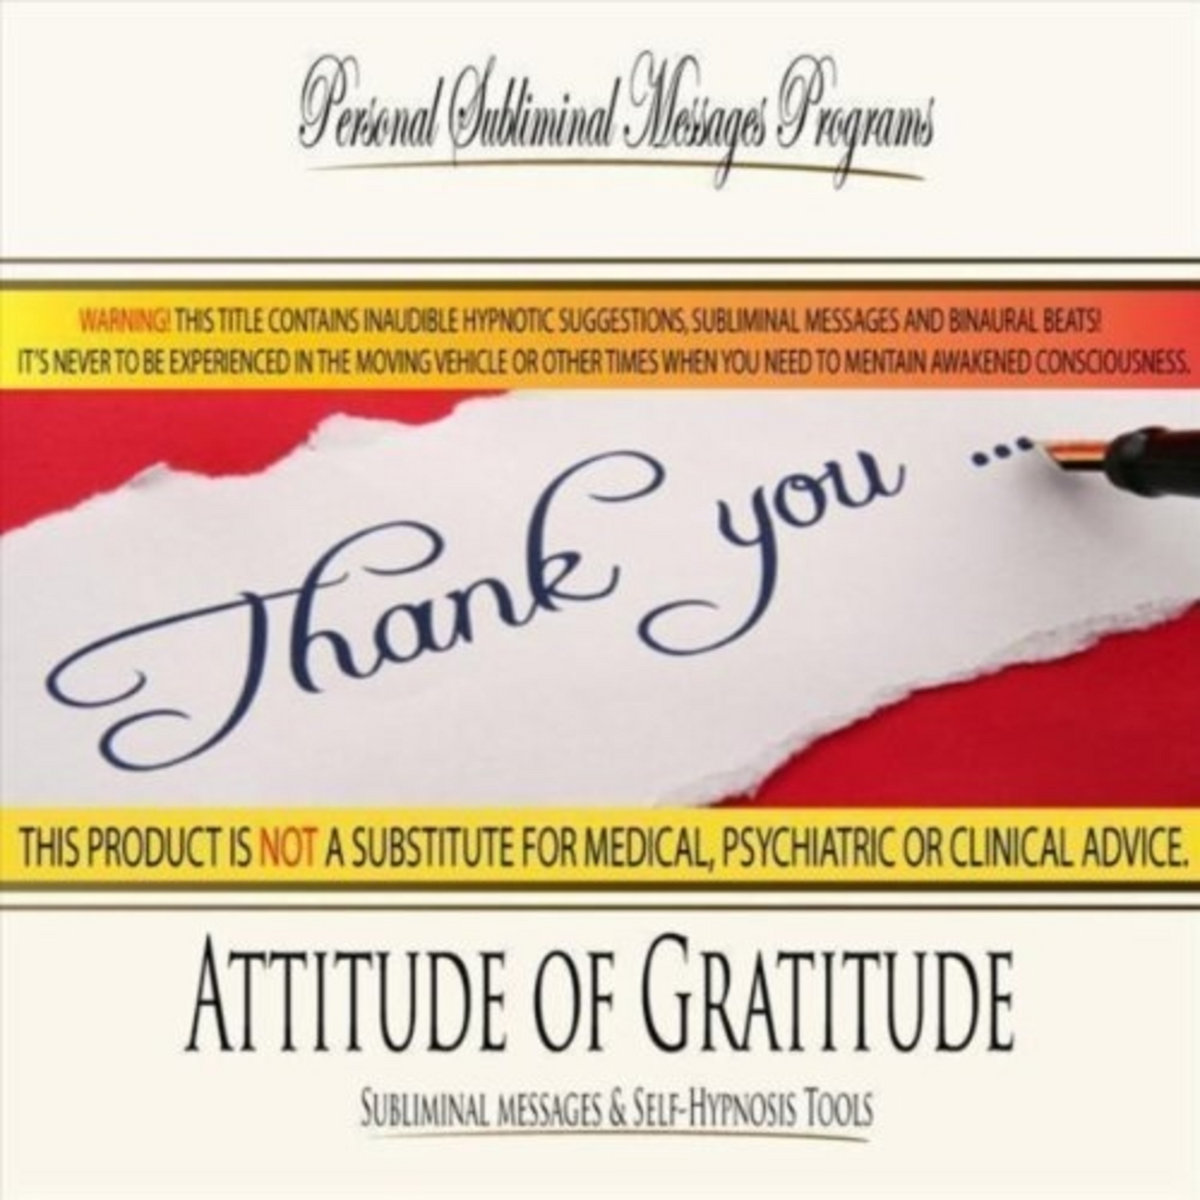 Attitude of Gratitude - Subliminal Messages | Personal Subliminal